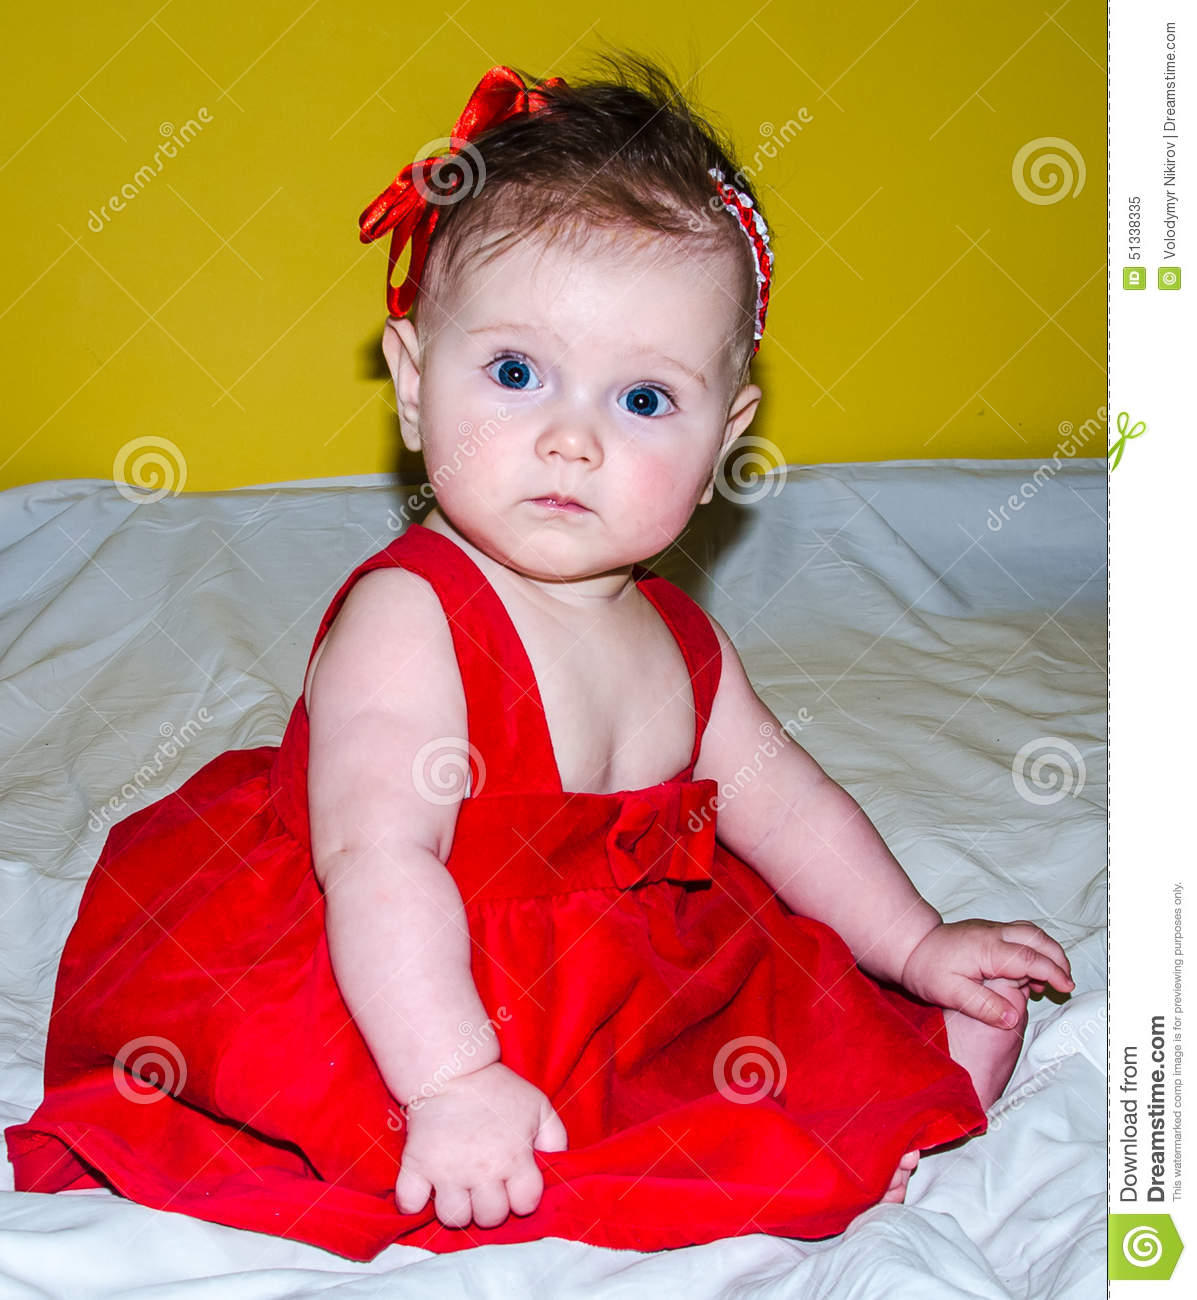 portrait of a beautiful little baby girl in a red dress with a bow